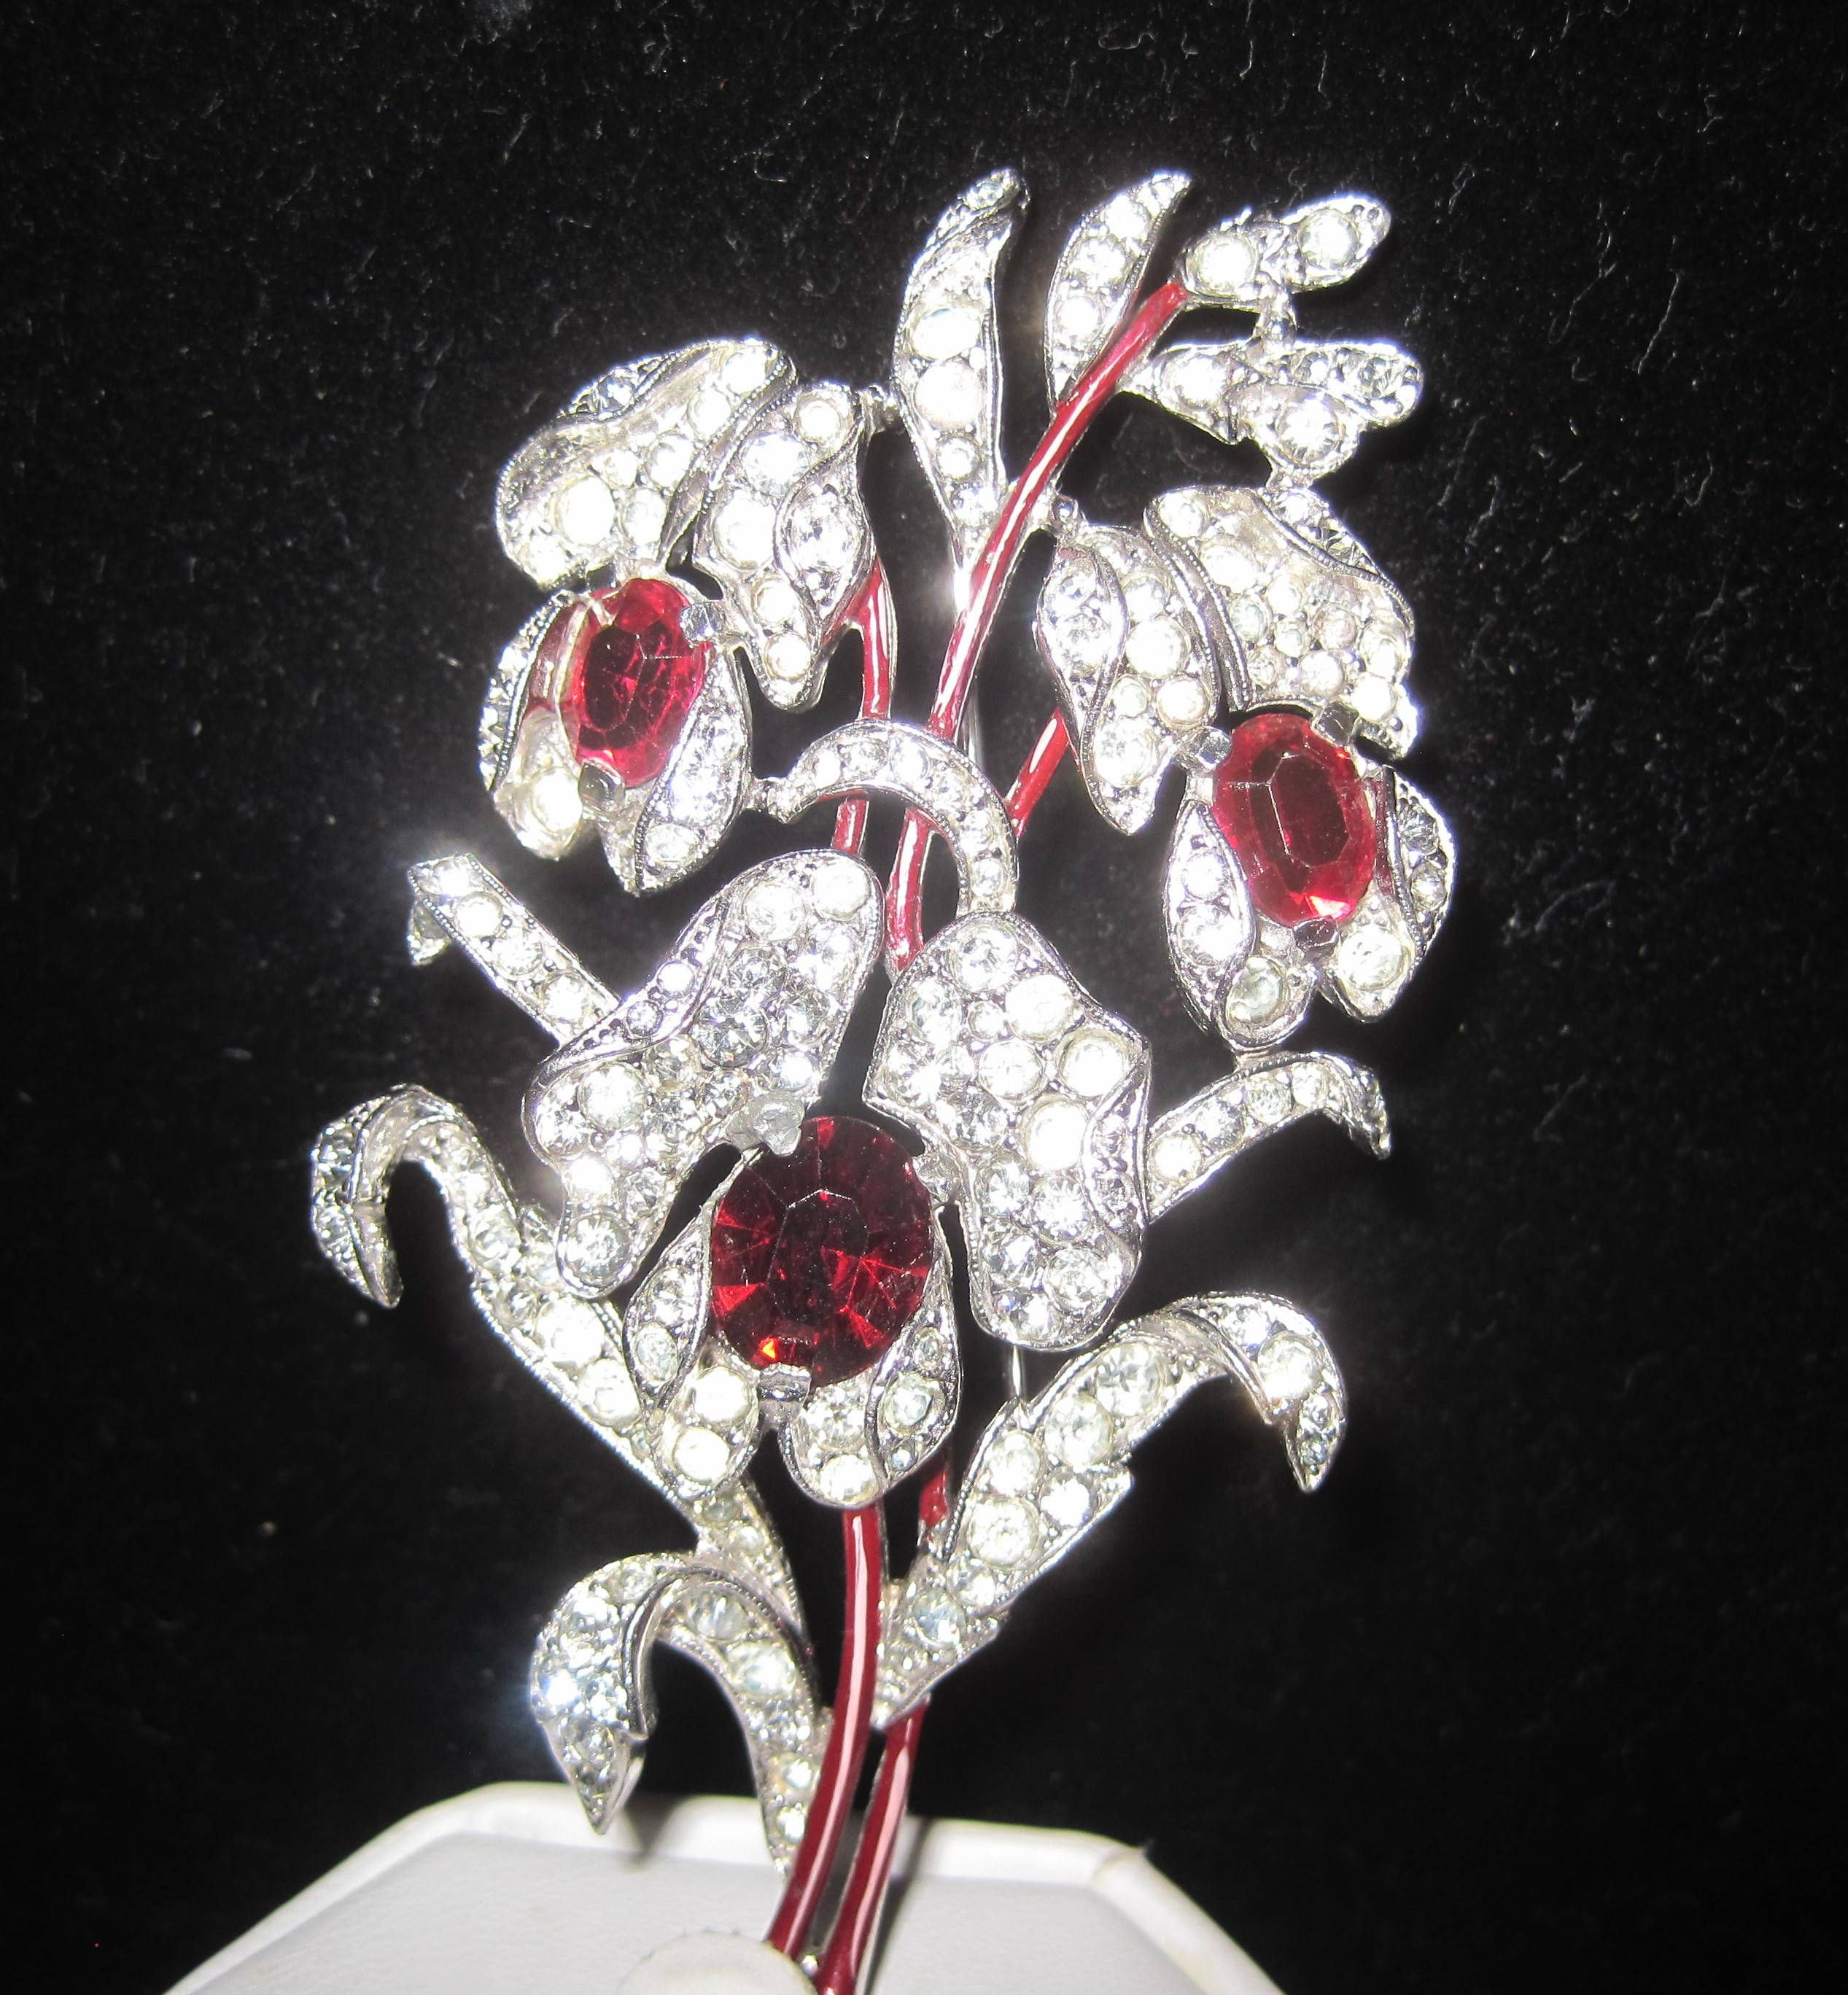 Crown trifari brooch red rhinestone des pat pend this